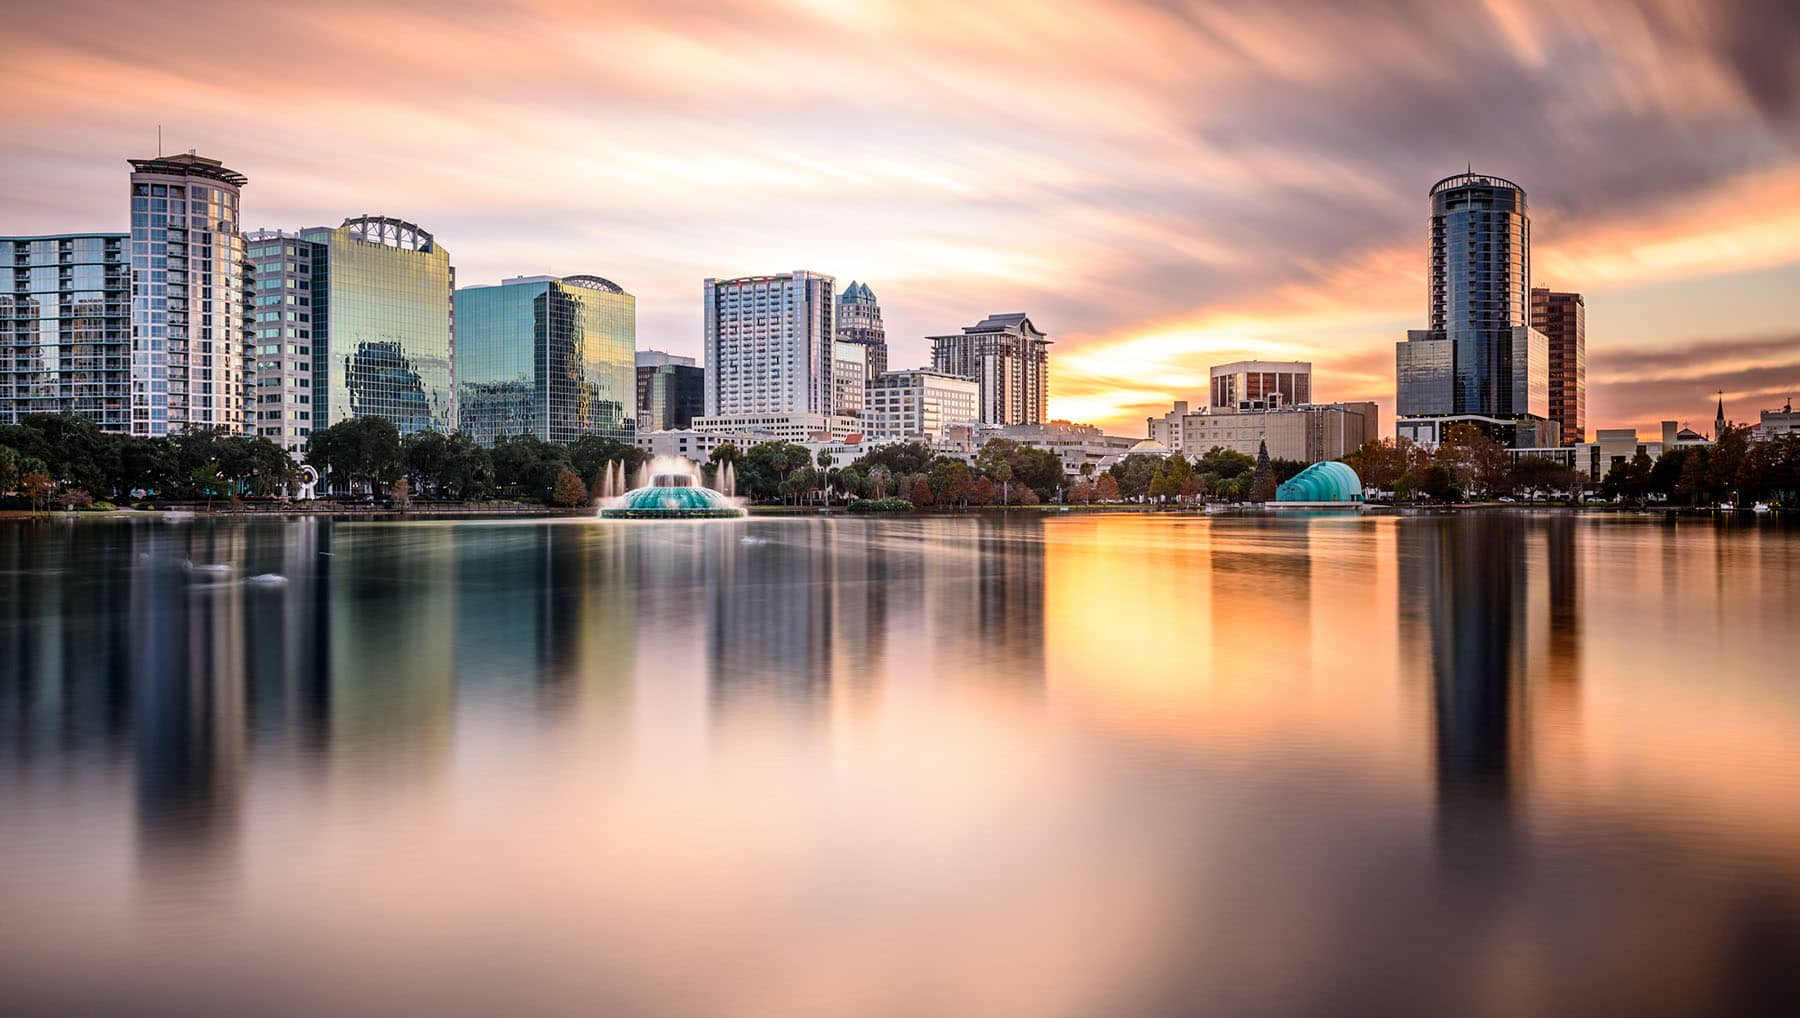 Downtown Orlando Lake Eola Picture